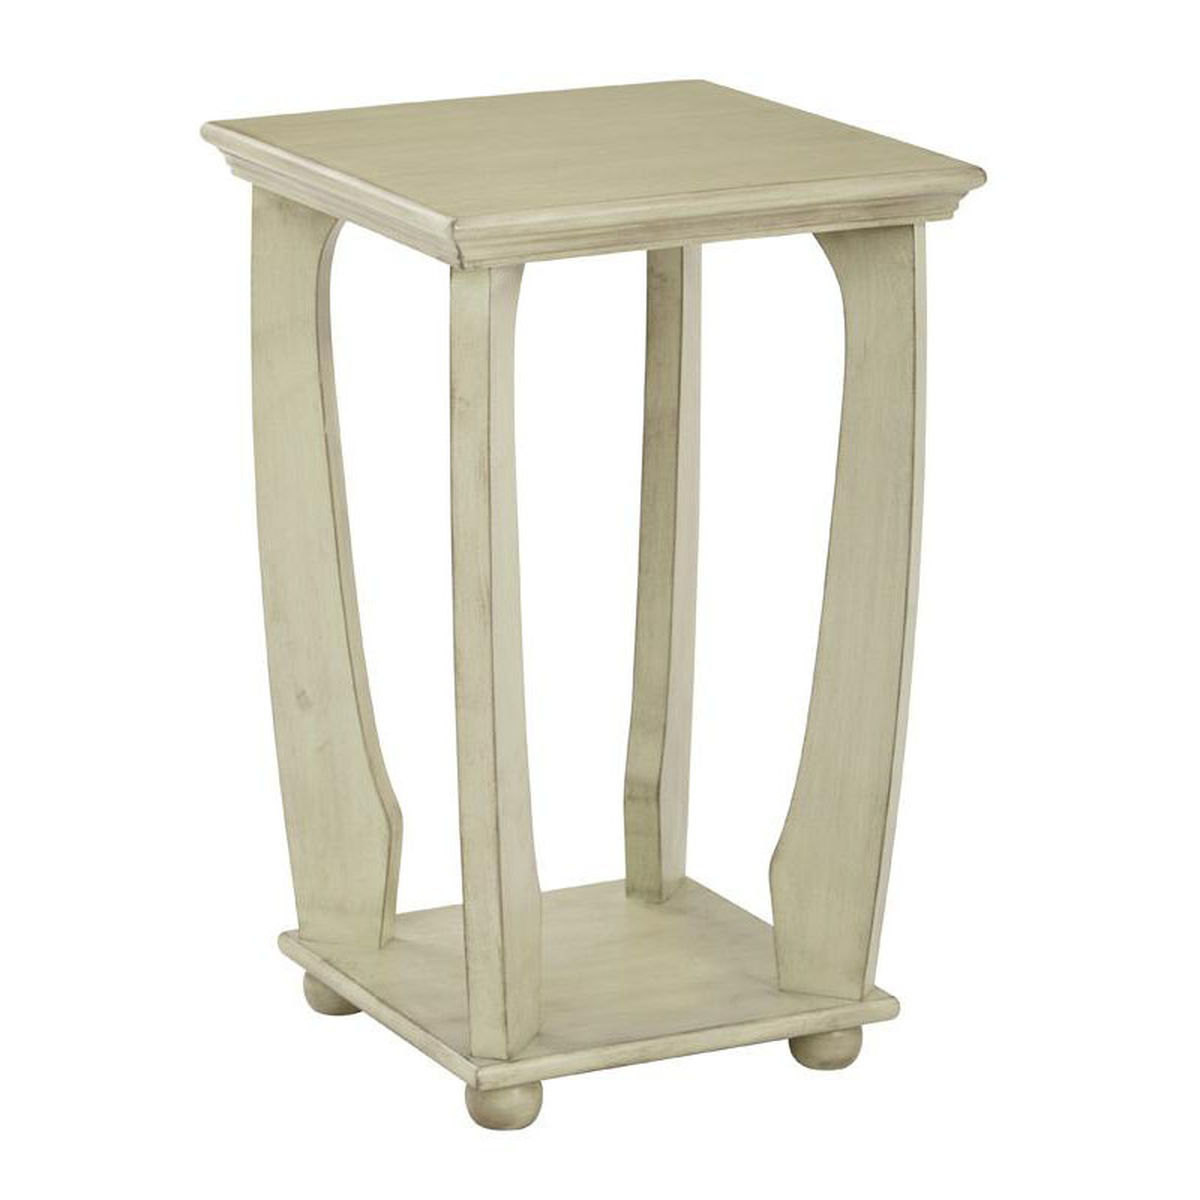 mila square accent table bizchair office star products main wood our osp designs antique celadon now grill brush round living room tile patio outdoor furniture target threshold